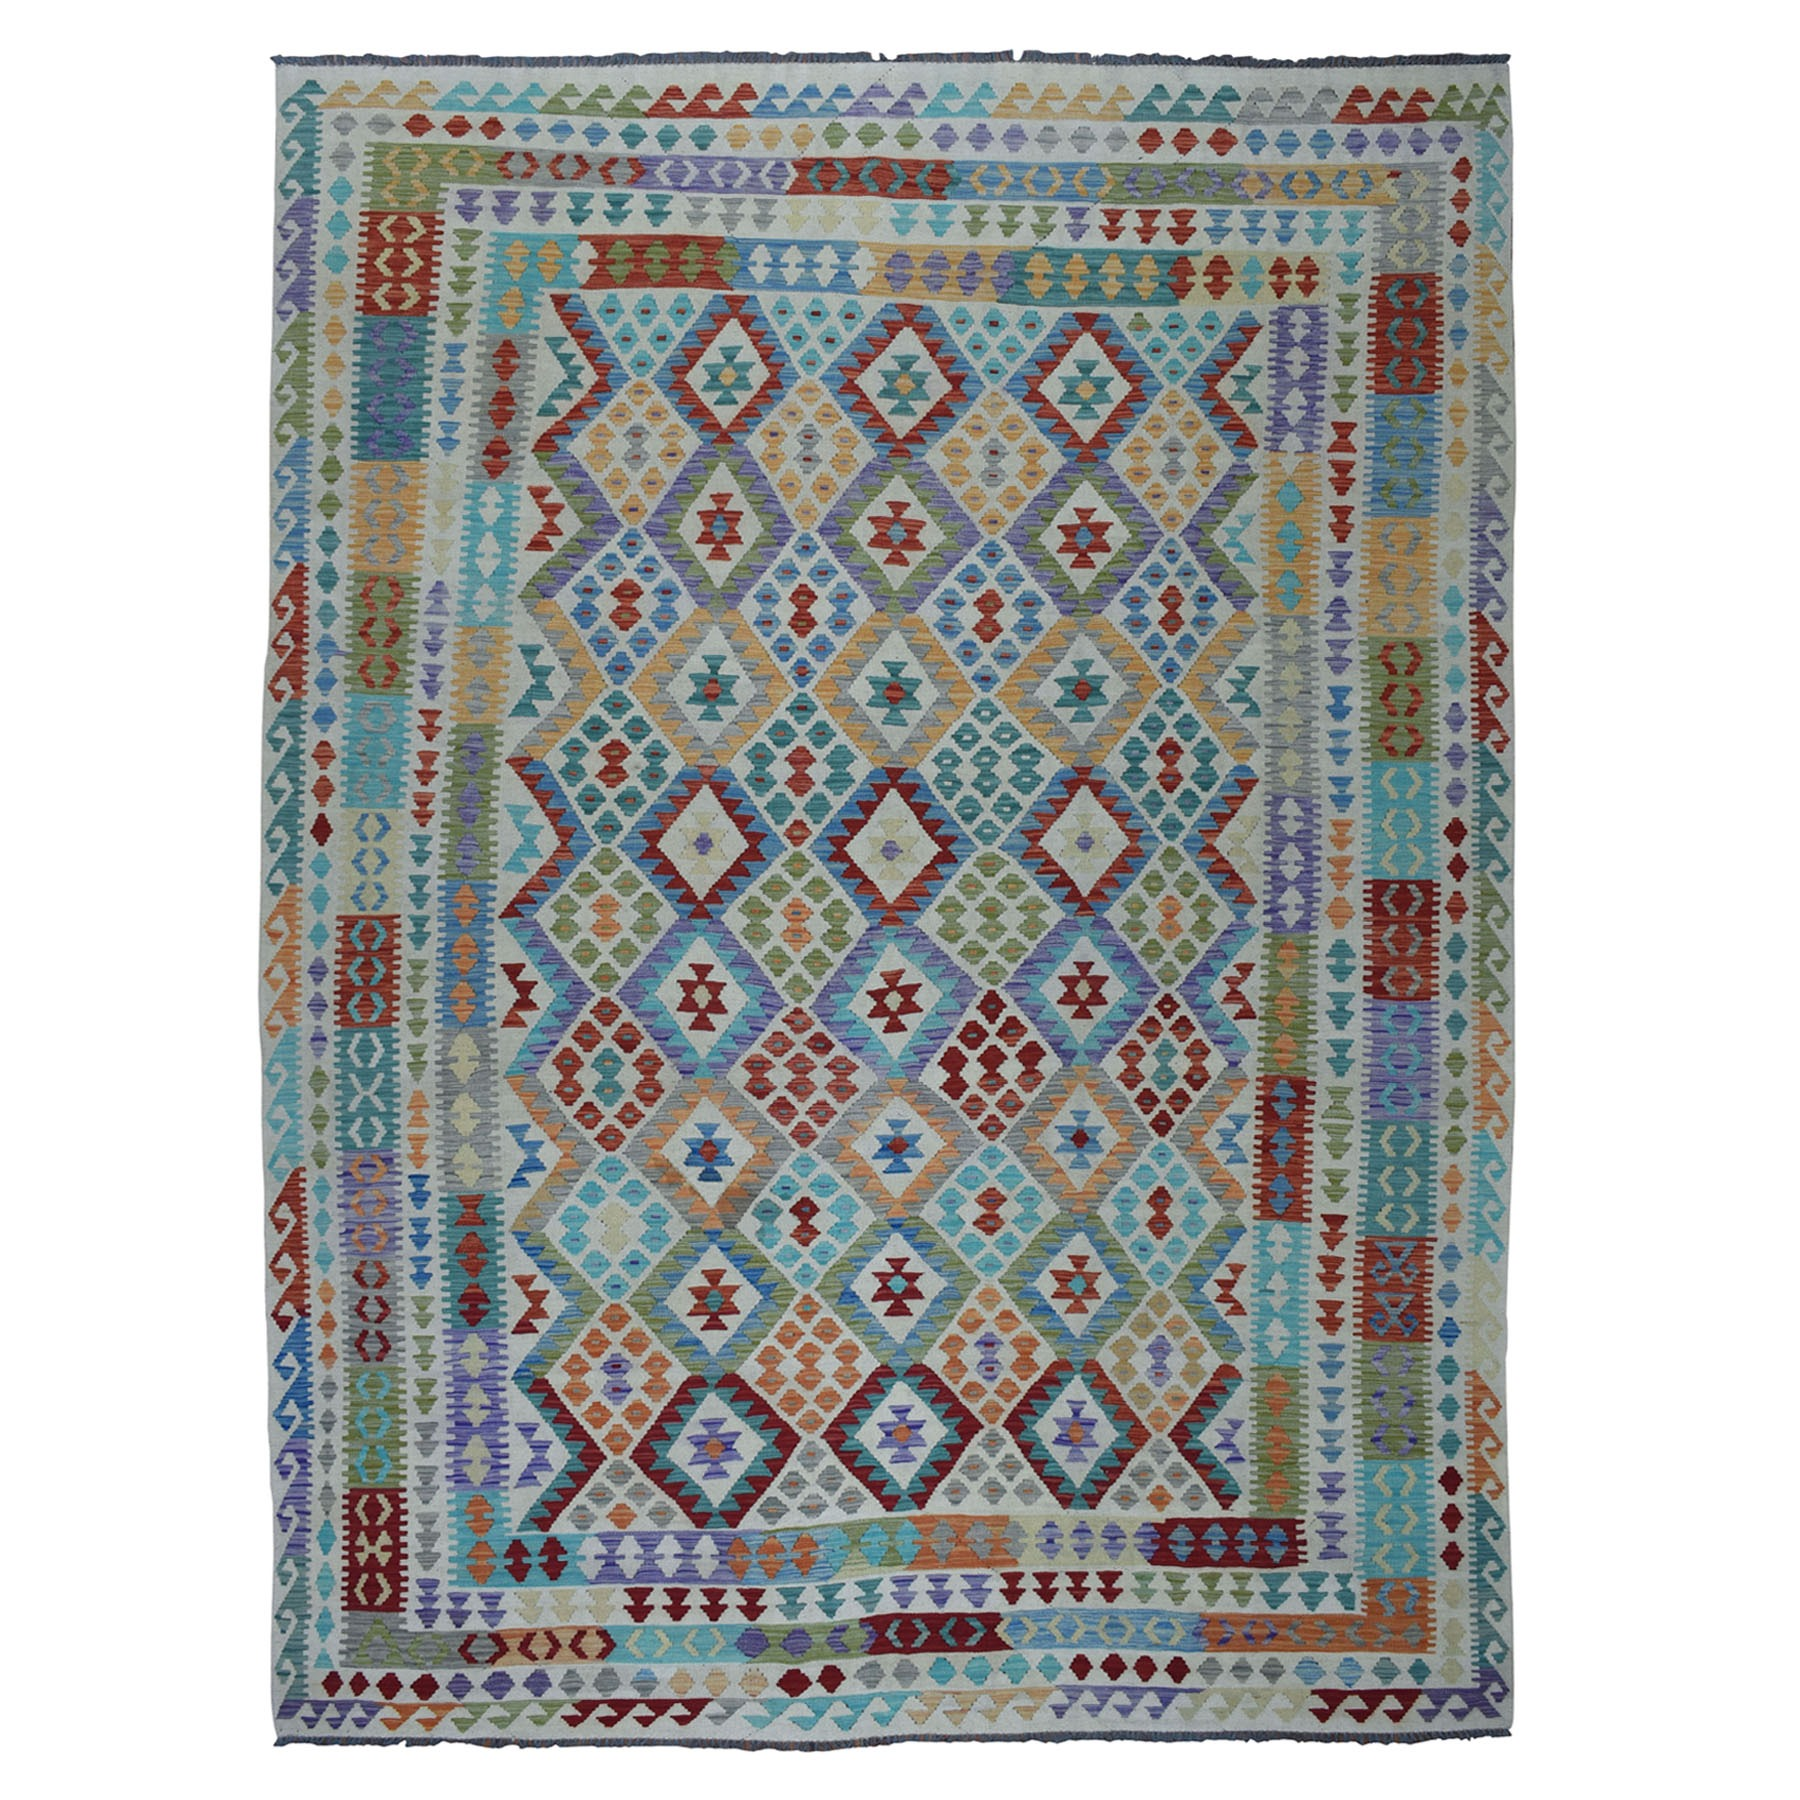 "8'7""x11'8"" Colorful Afghan Kilim Pure Wool Hand Woven Oriental Rug"